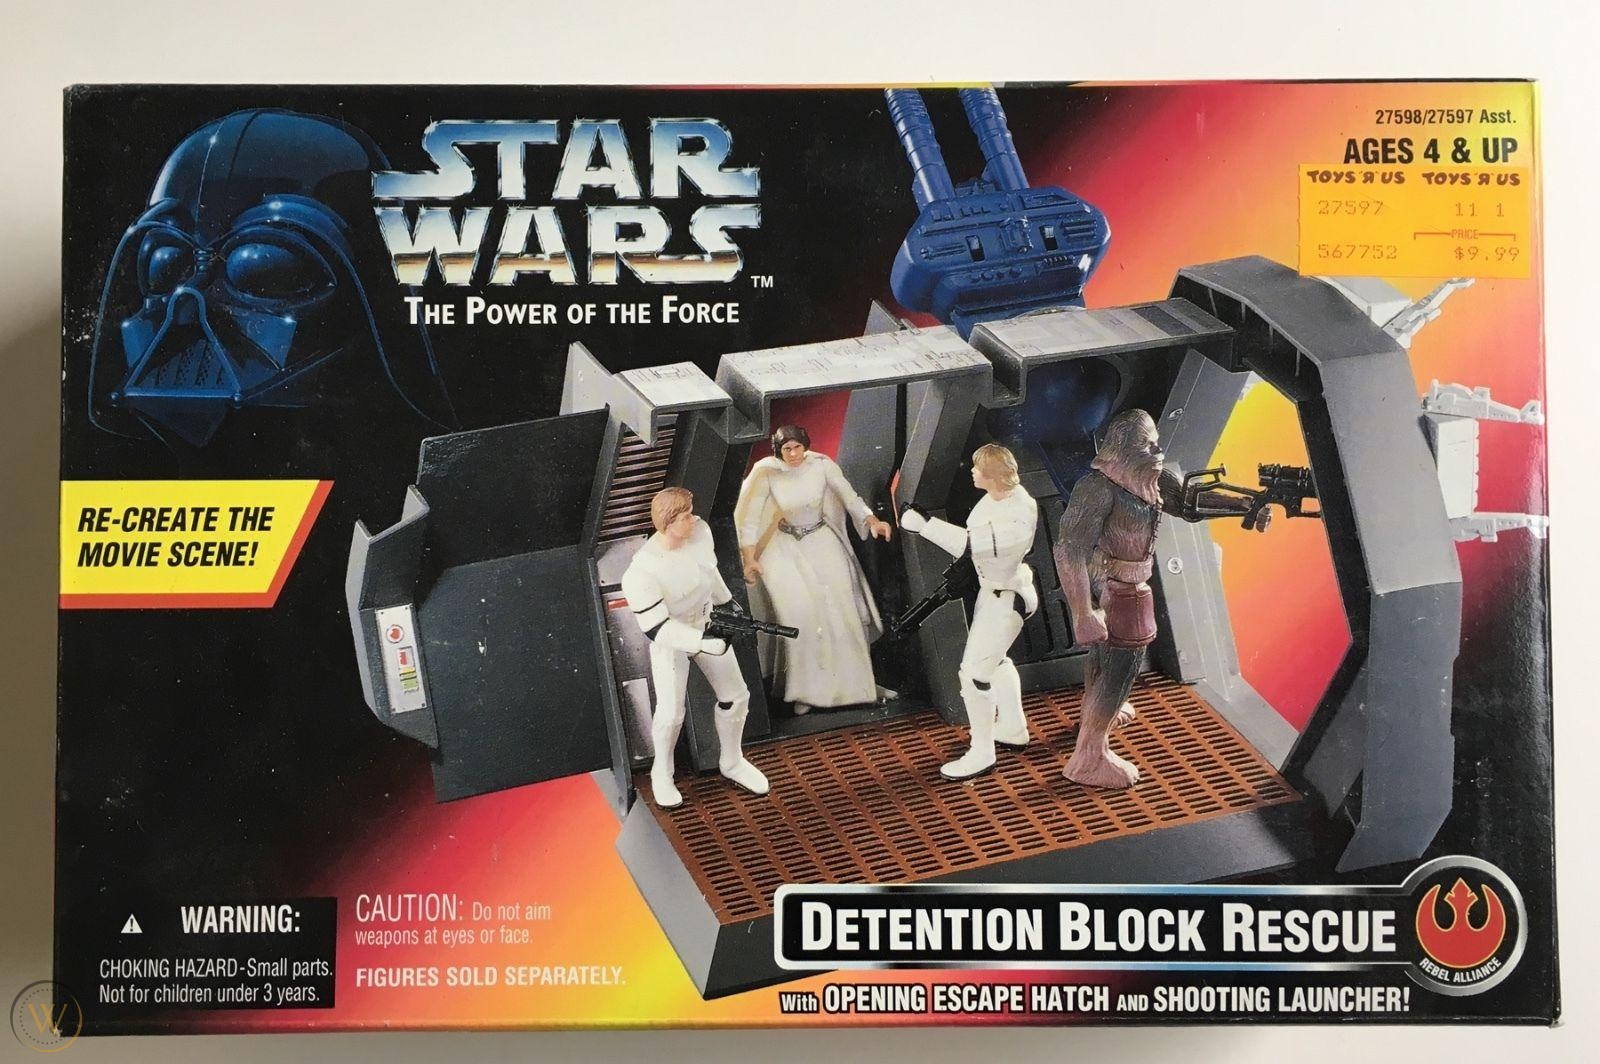 detention-block-rescue-death-star_1_c7372cfee7aea794b766f3f615343c89.jpg